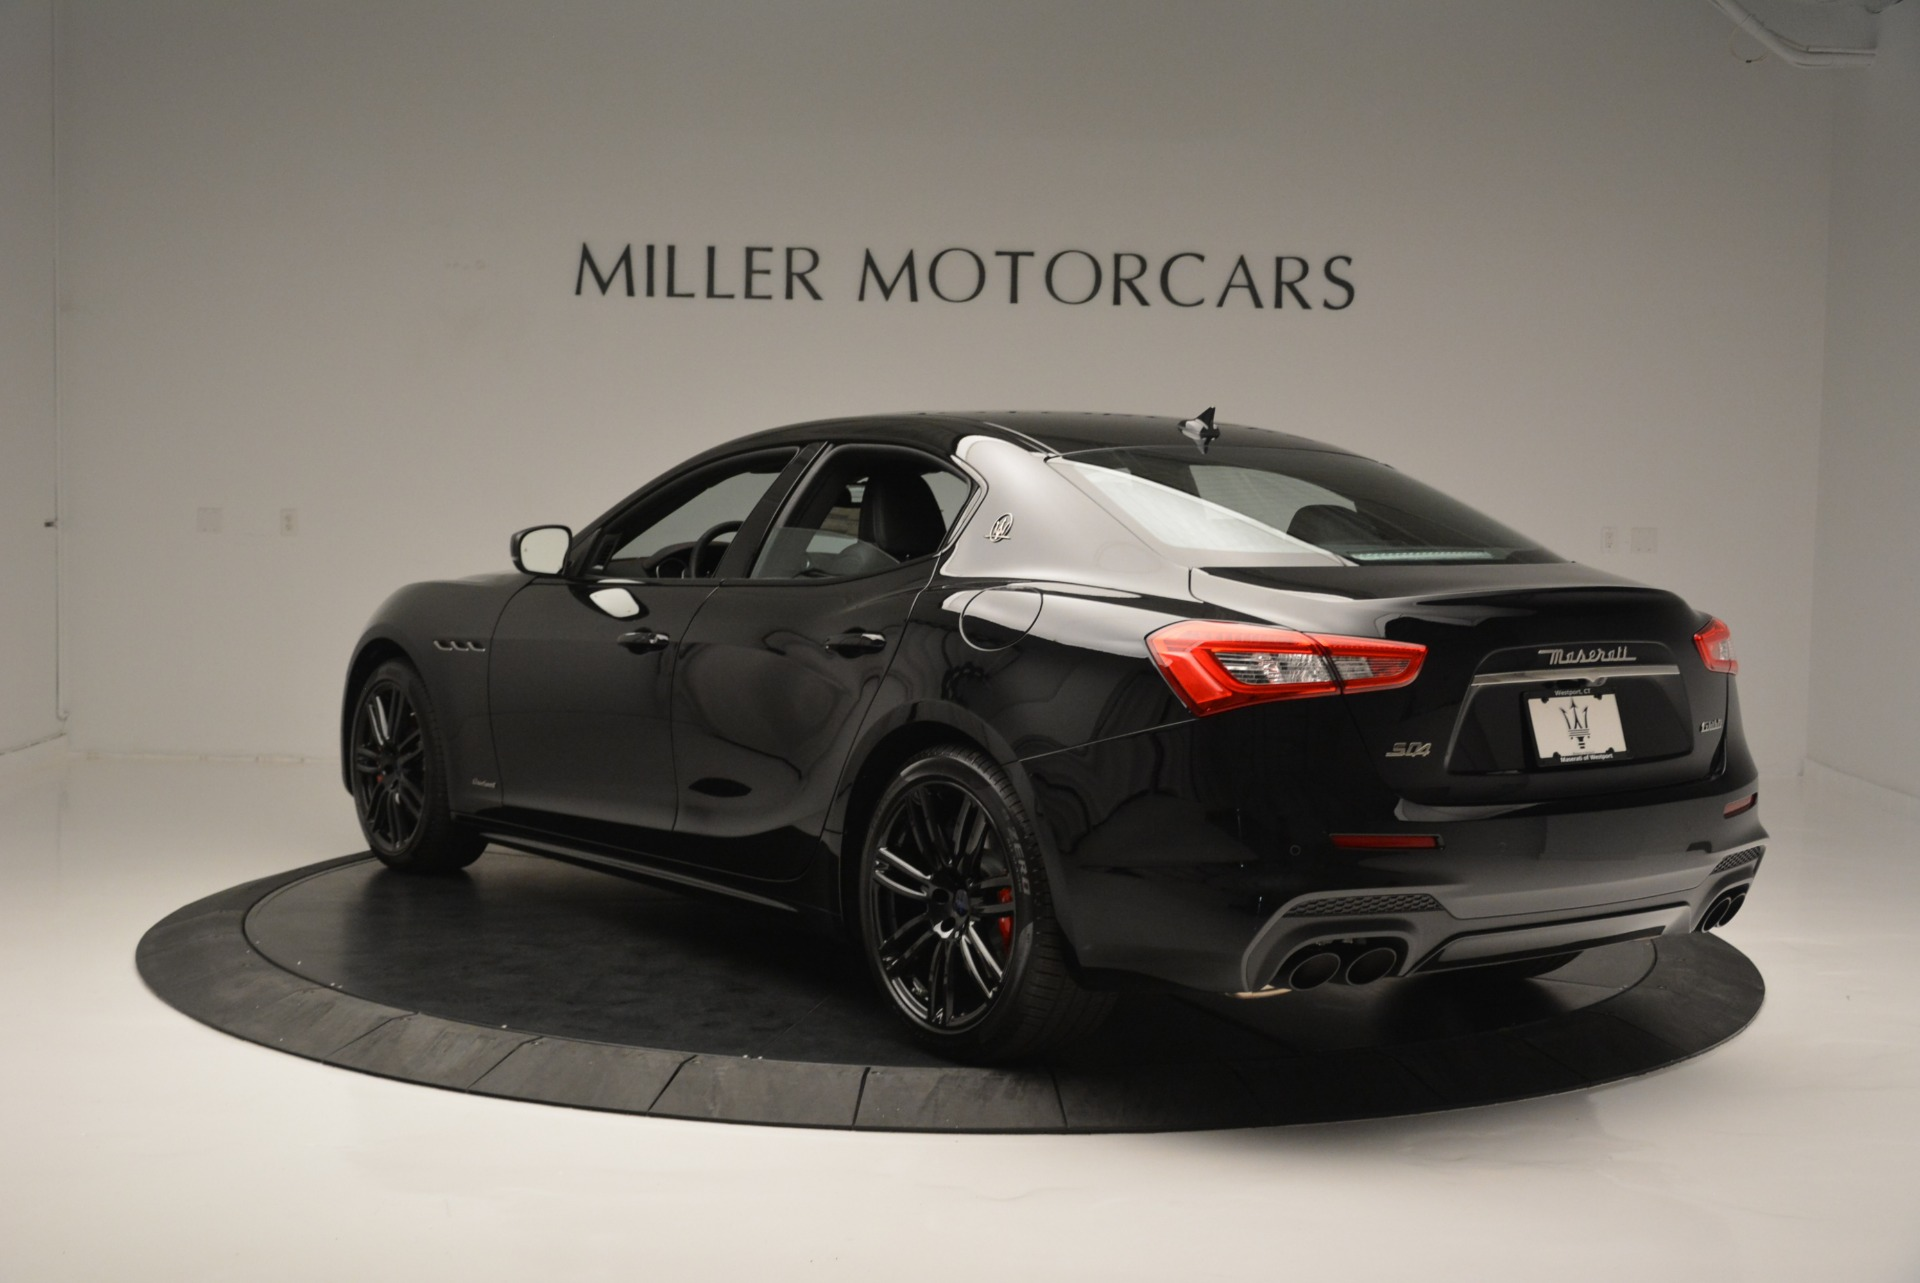 New 2018 Maserati Ghibli SQ4 GranSport Nerissimo For Sale In Westport, CT 2366_p5